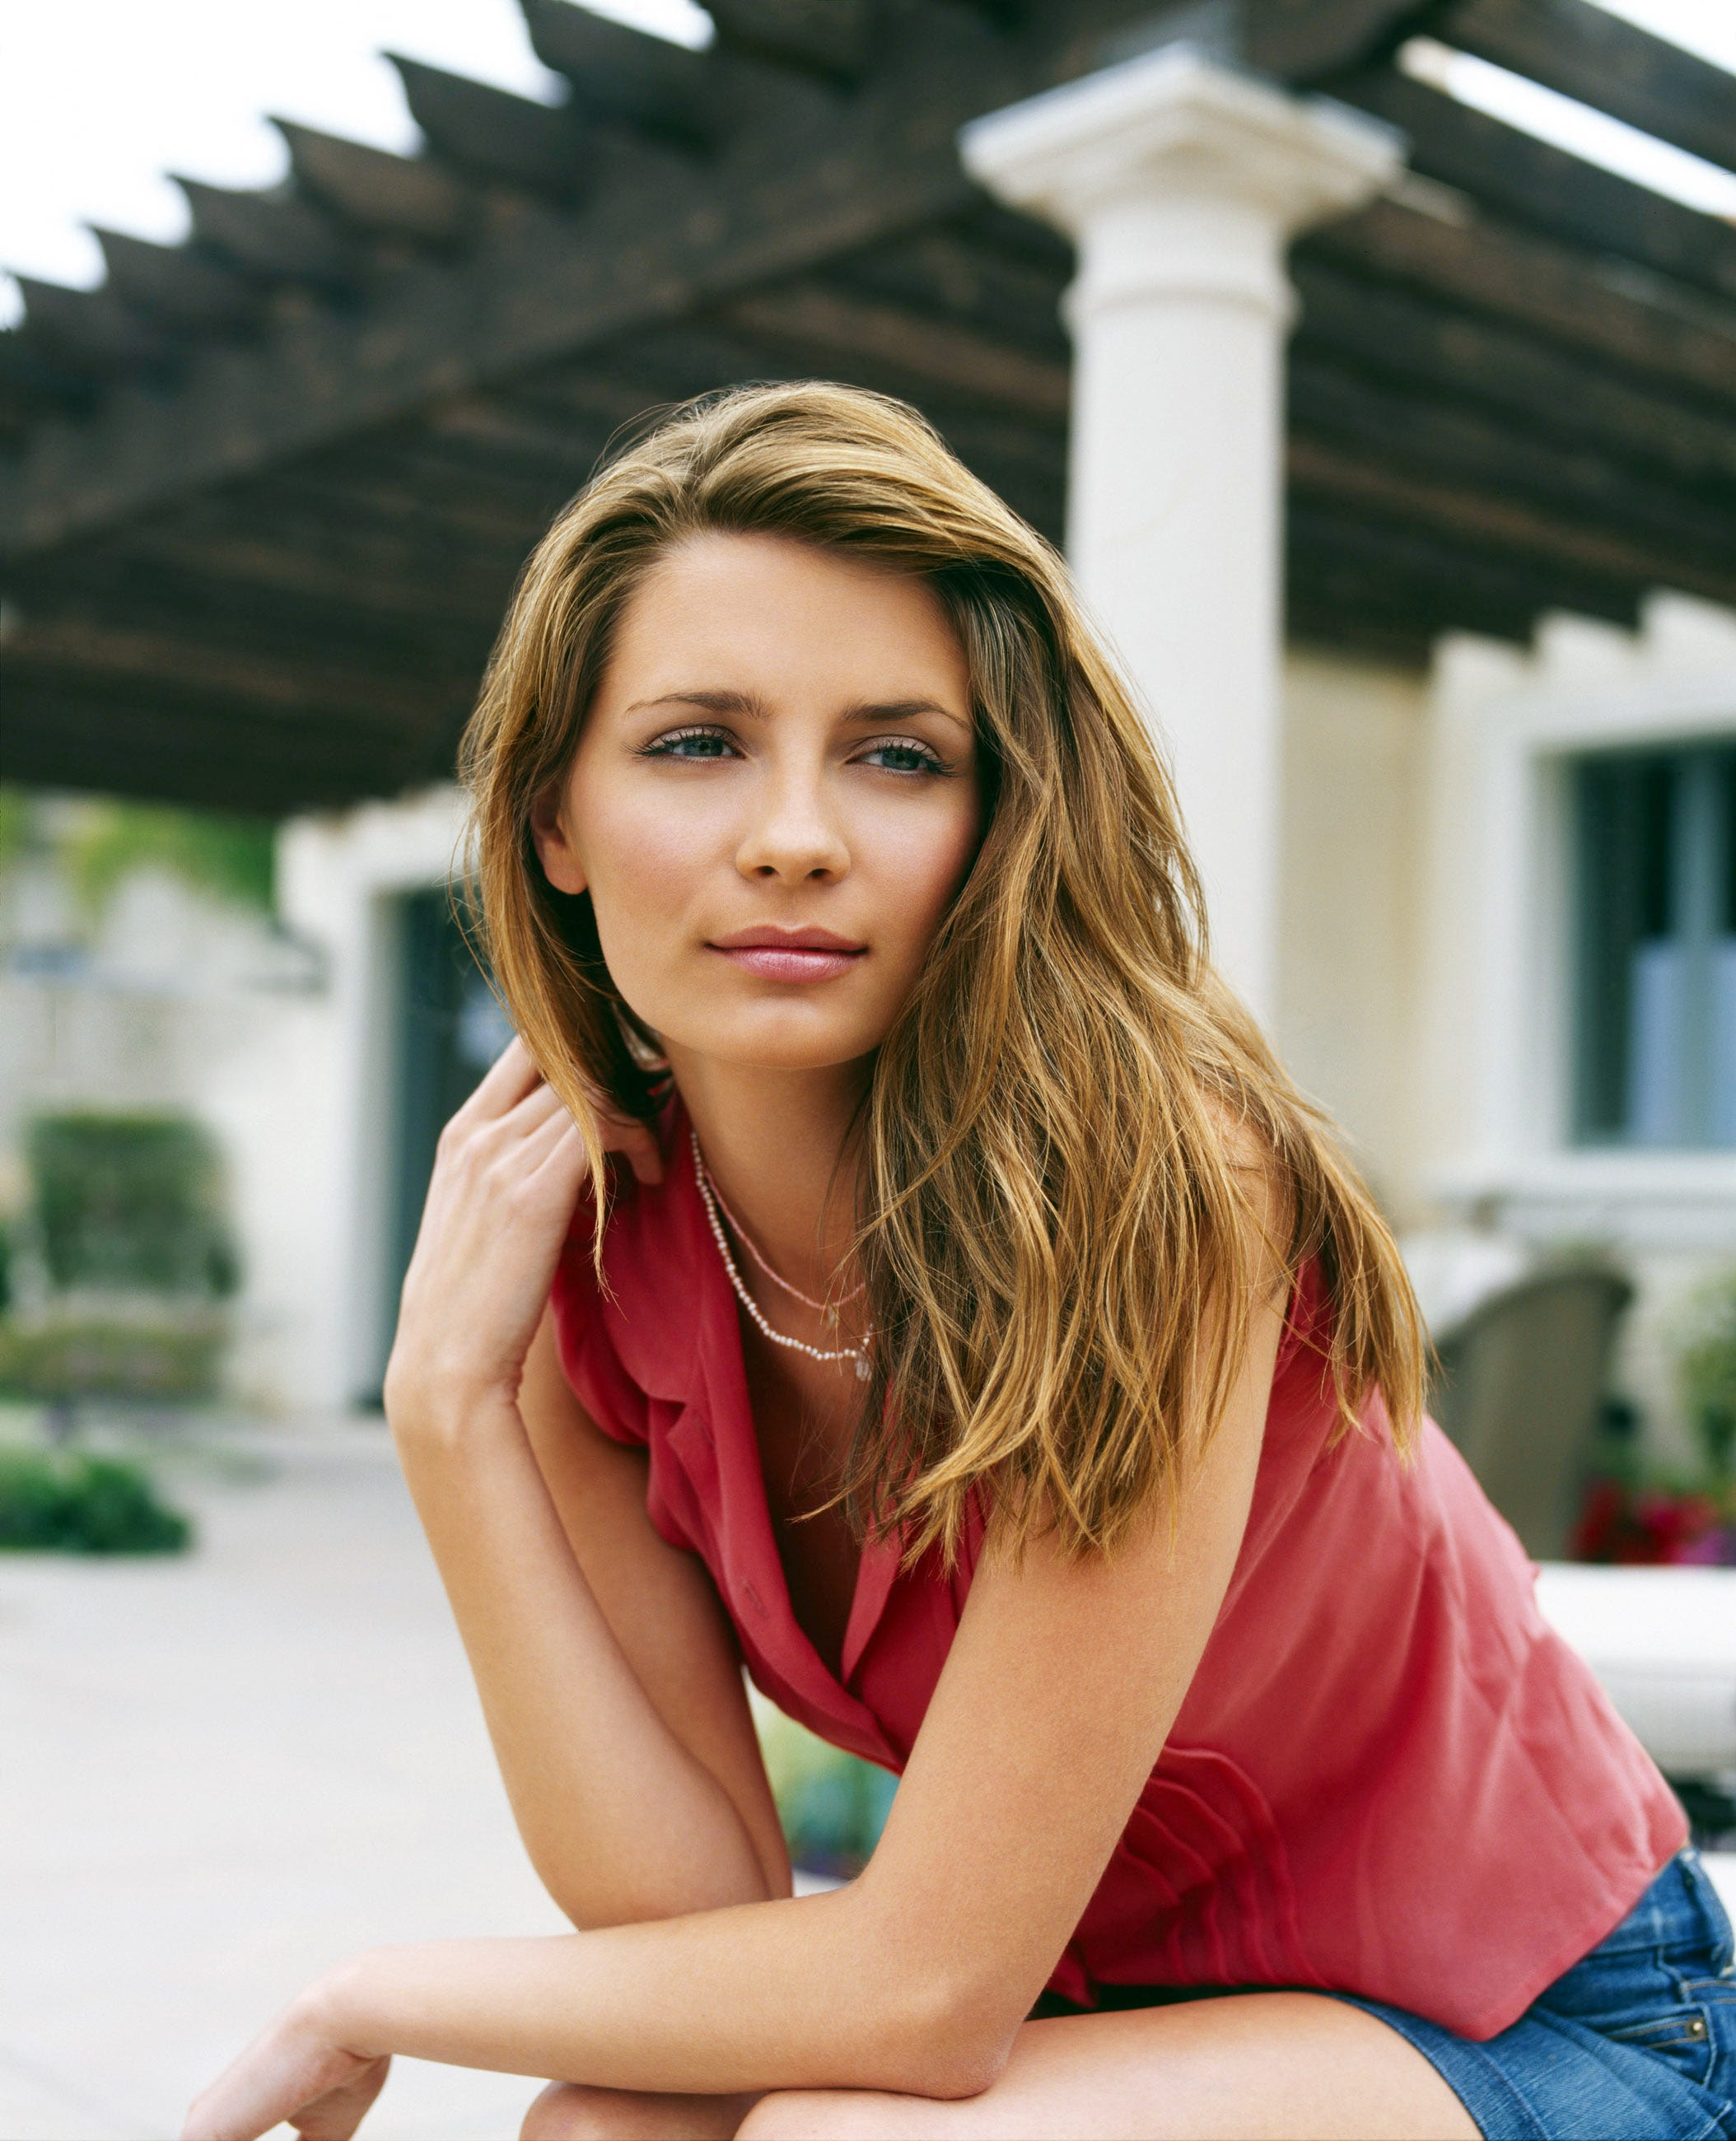 The Return Of Marissa Cooper: Mischa Barton Launches ClothingLine